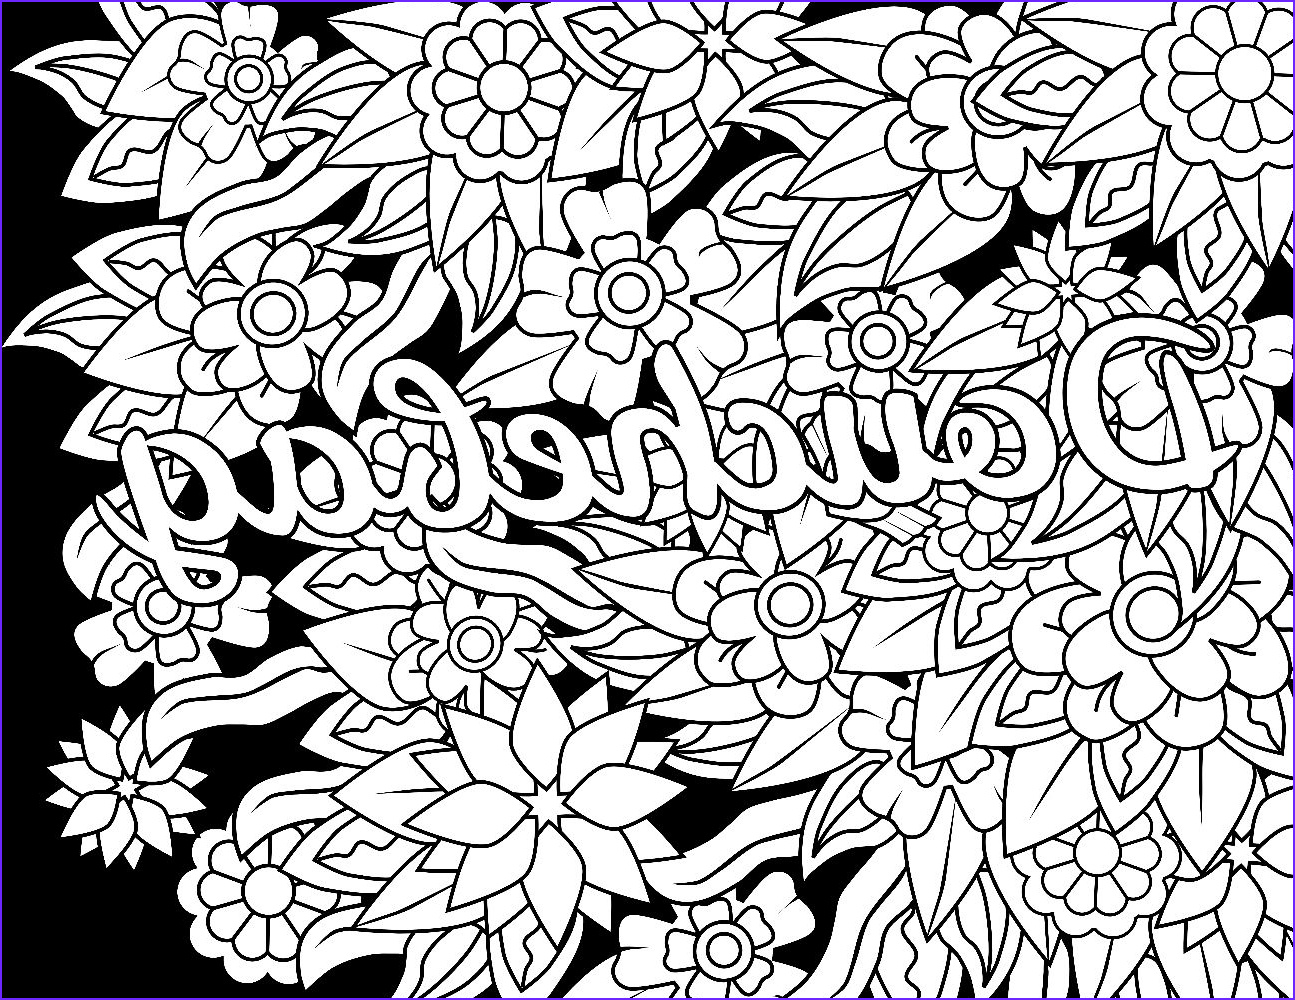 Coloring for Adults Swear Words Unique Photos Douchebag Swear Word Coloring Page Adult Coloring Page